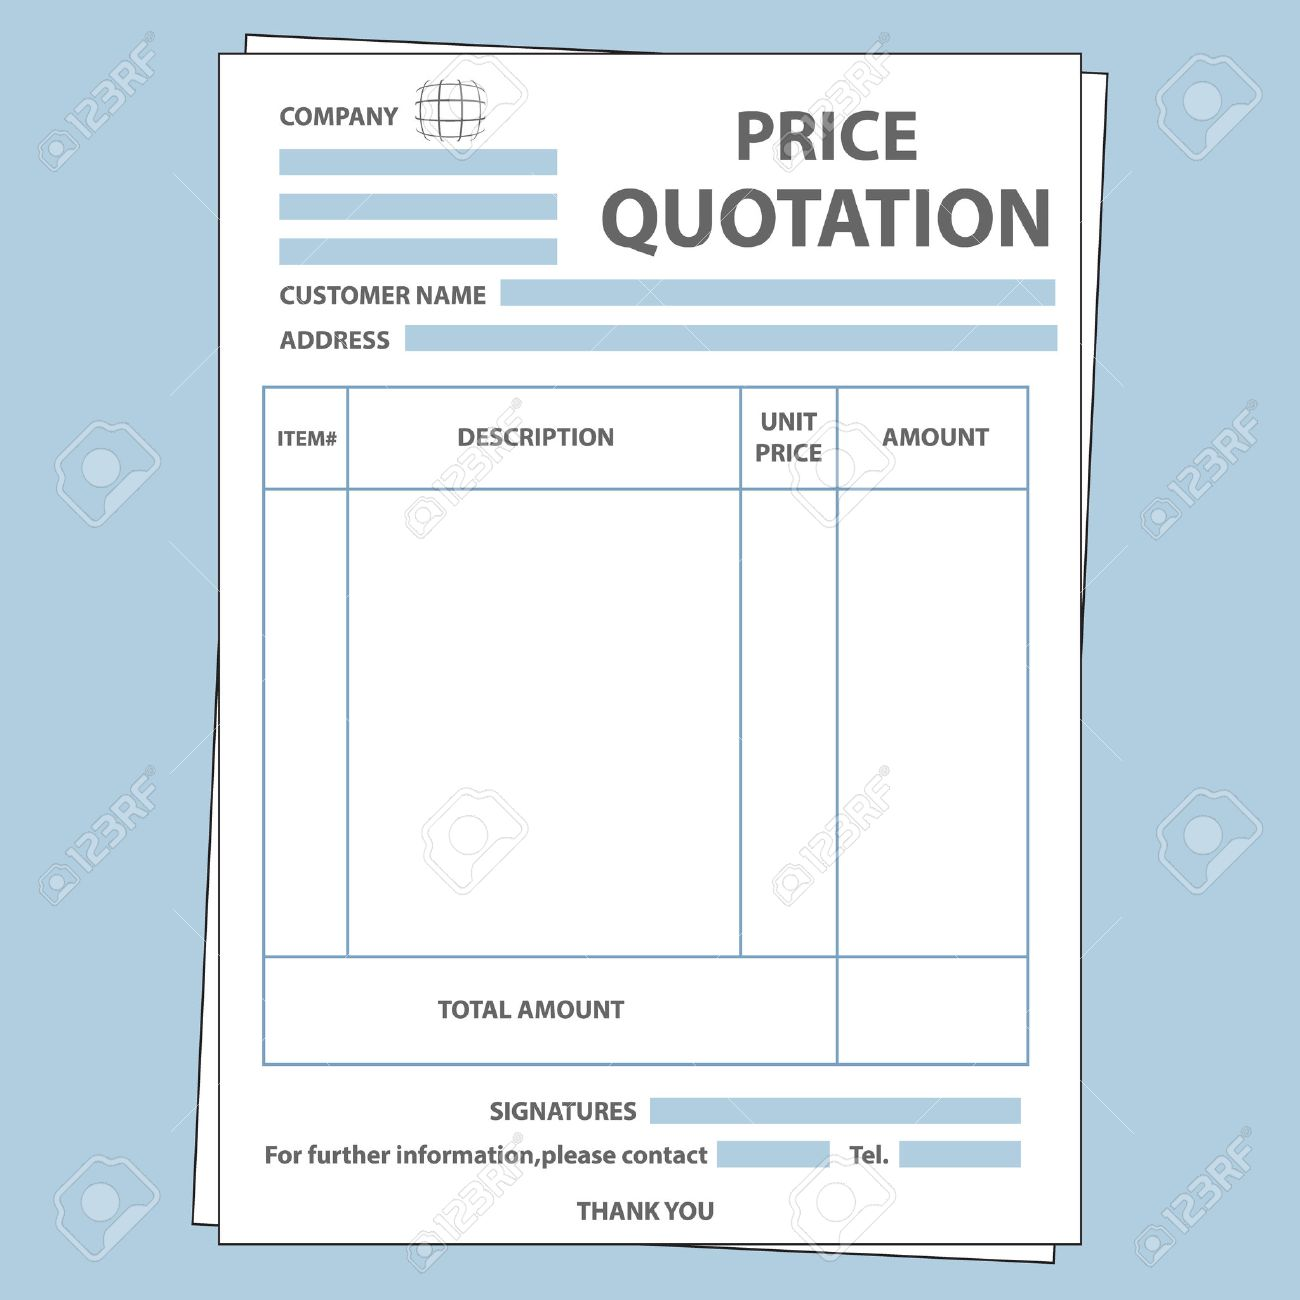 Illustration Of Blank Sale Price Quotation Form Royalty Free ...